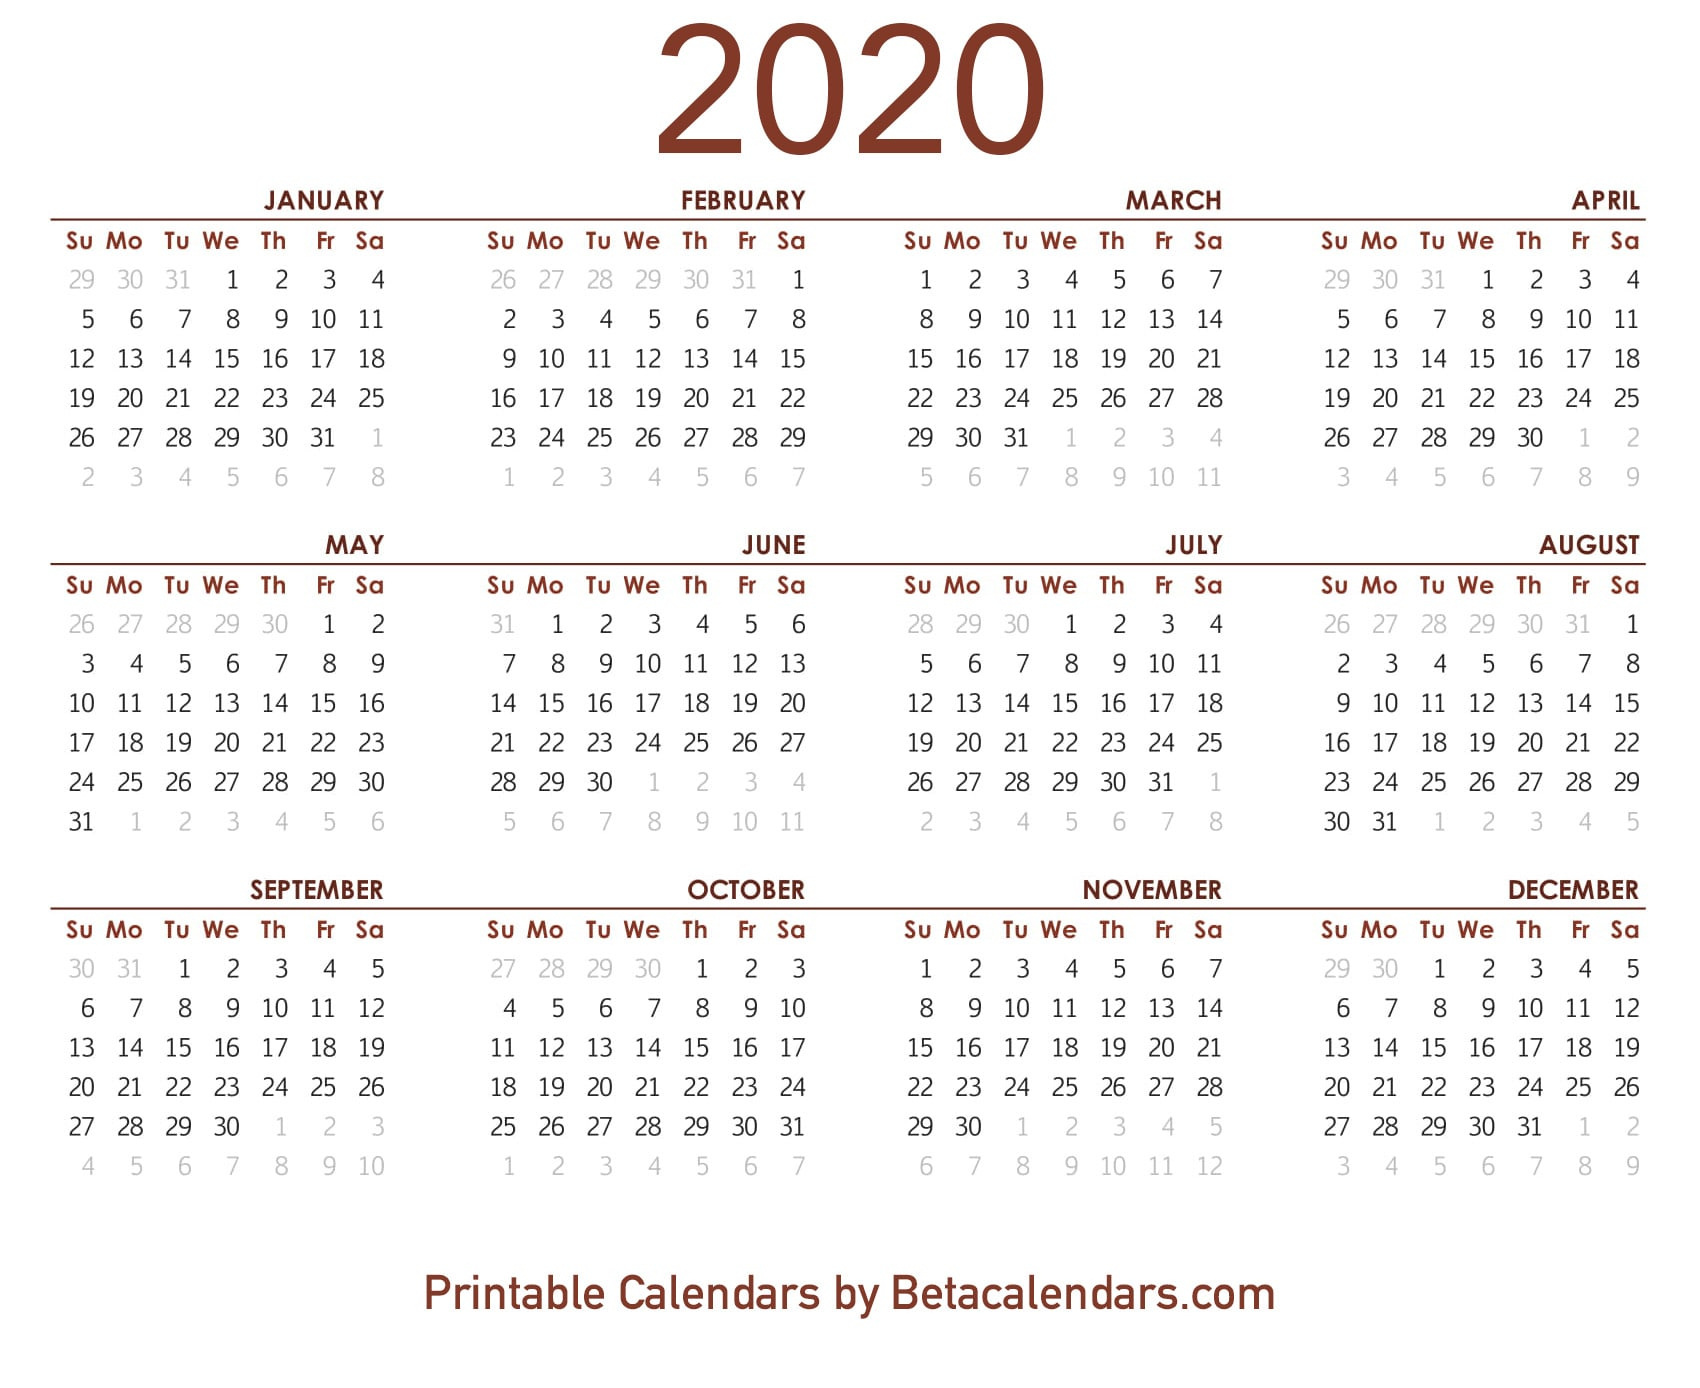 2020 Calendar - Free Printable Yearly Calendar 2020 throughout Sunday To Saturday Calendar 2020 Printable